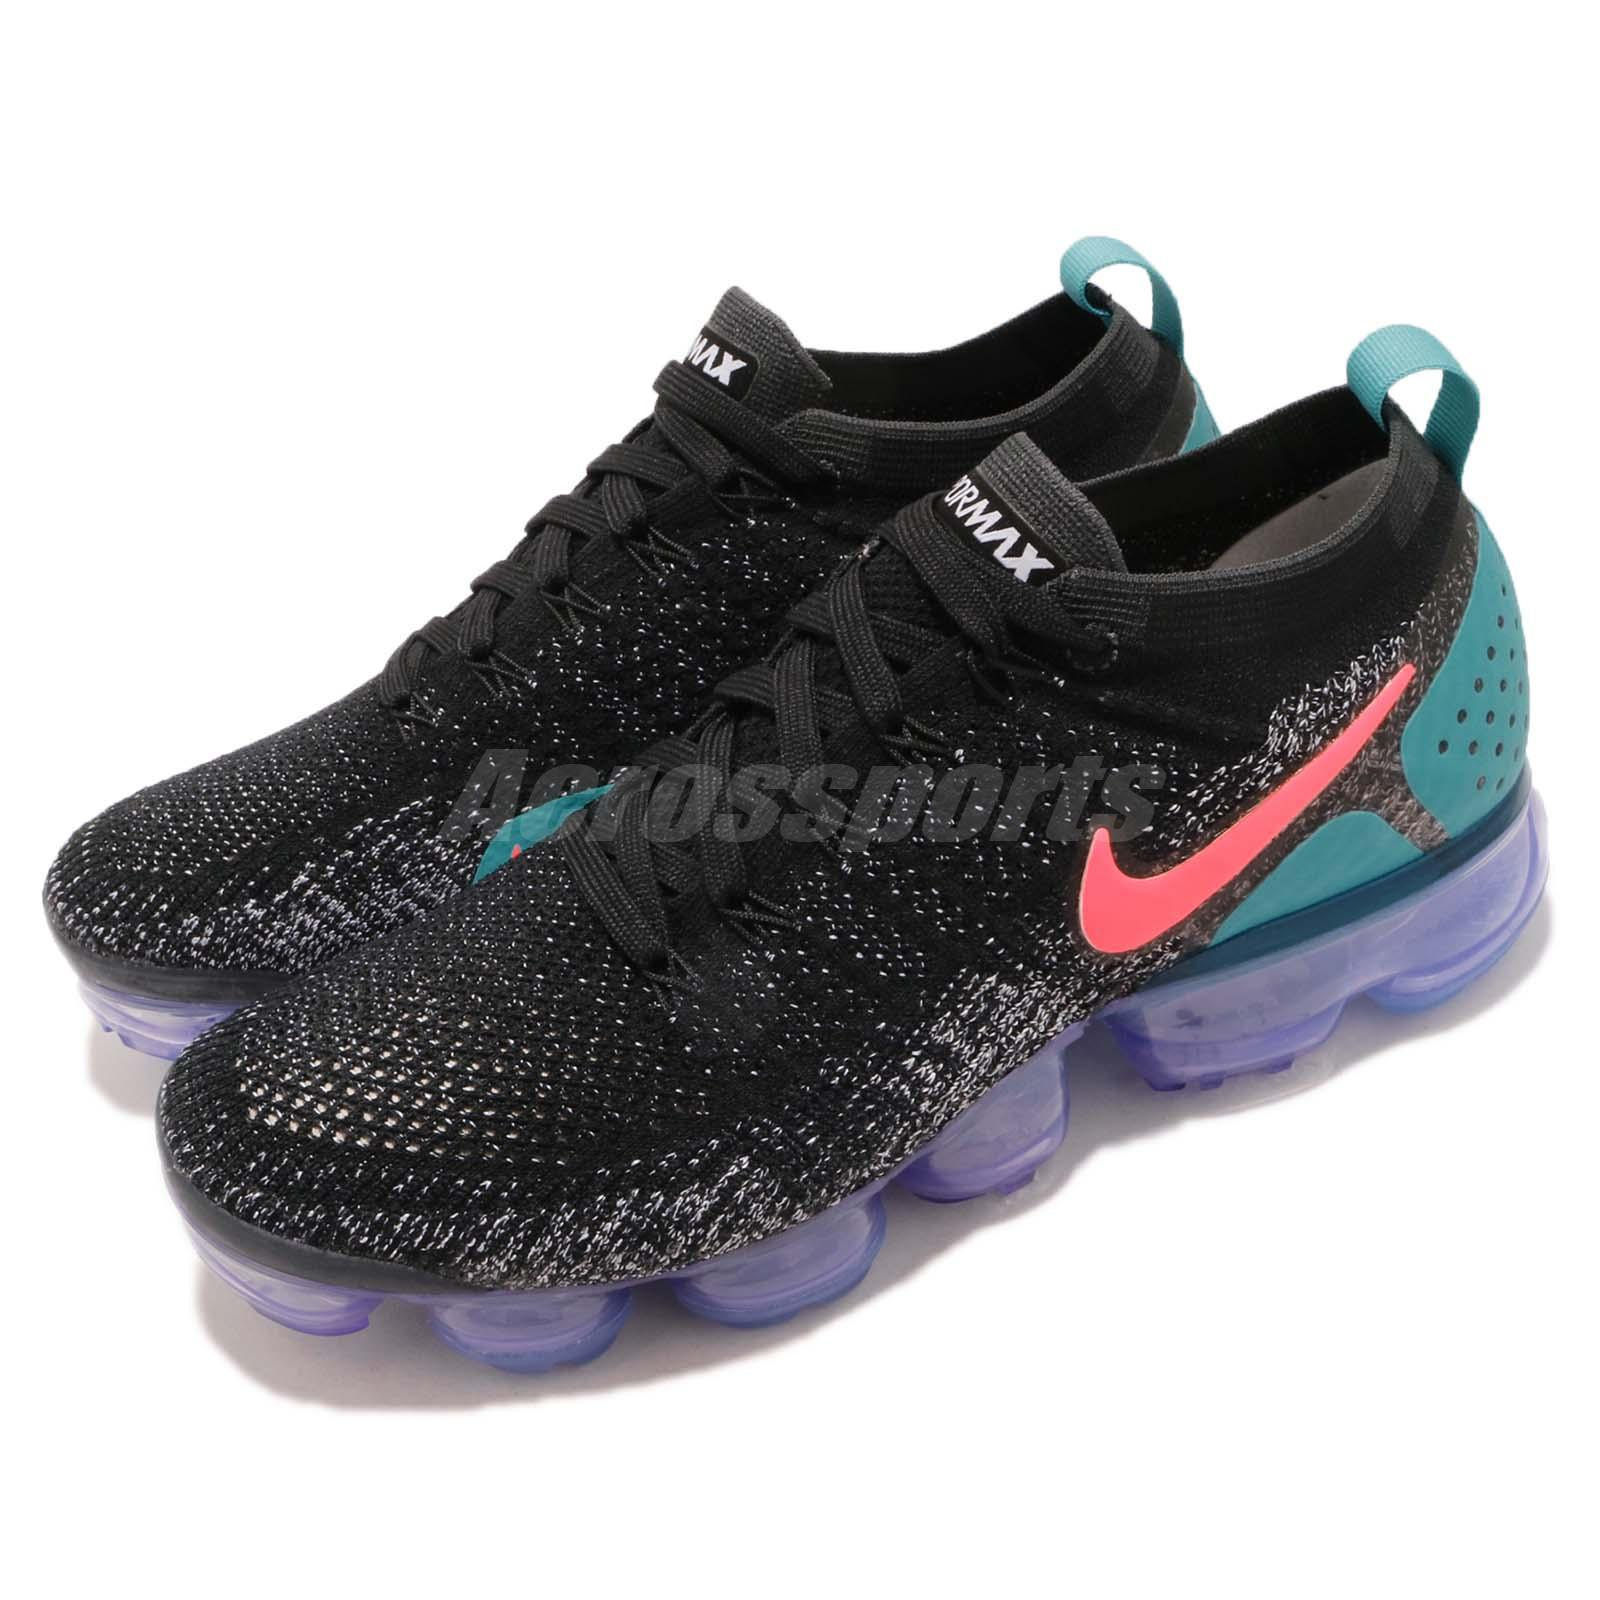 big sale d45af 72b83 Details about Nike Air Vapormax Flyknit 2 Black Dusty Cactus Max Mens  Running Shoes 942842-003